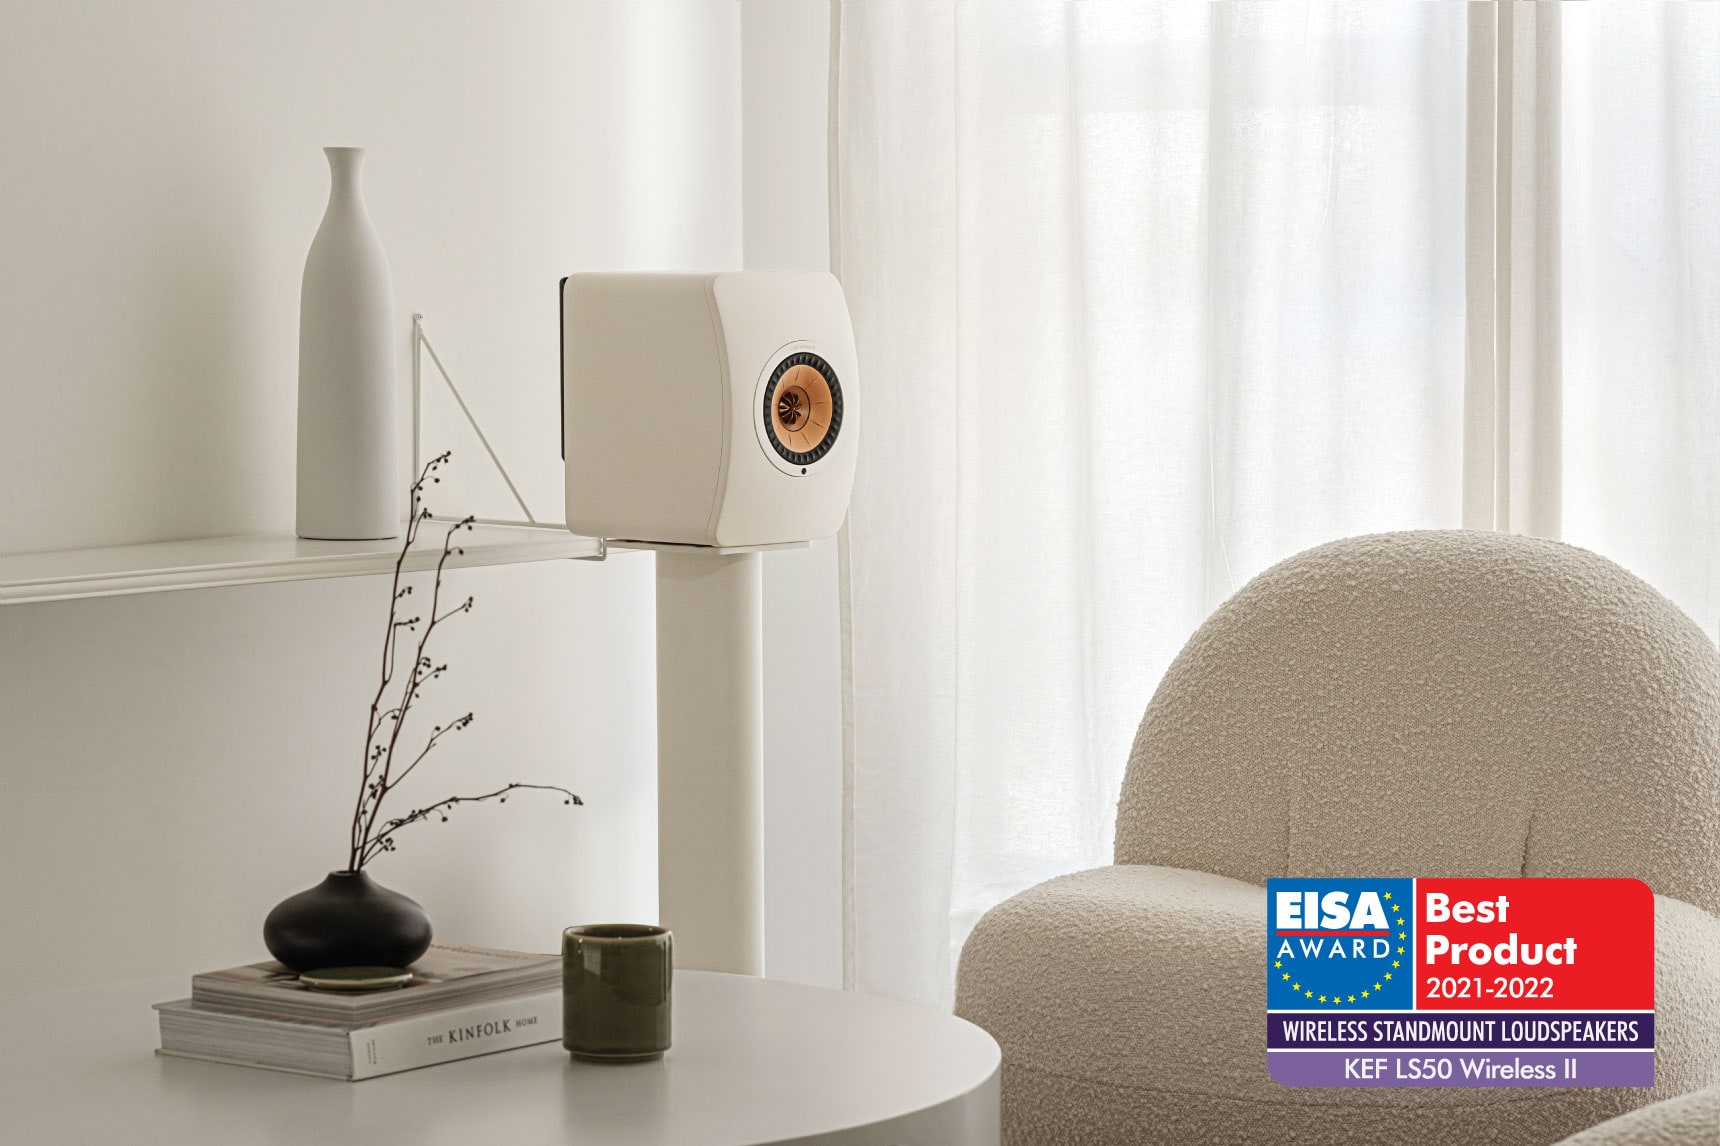 KEF Triumphs with a Triple Win in EISA Awards 2021-2022